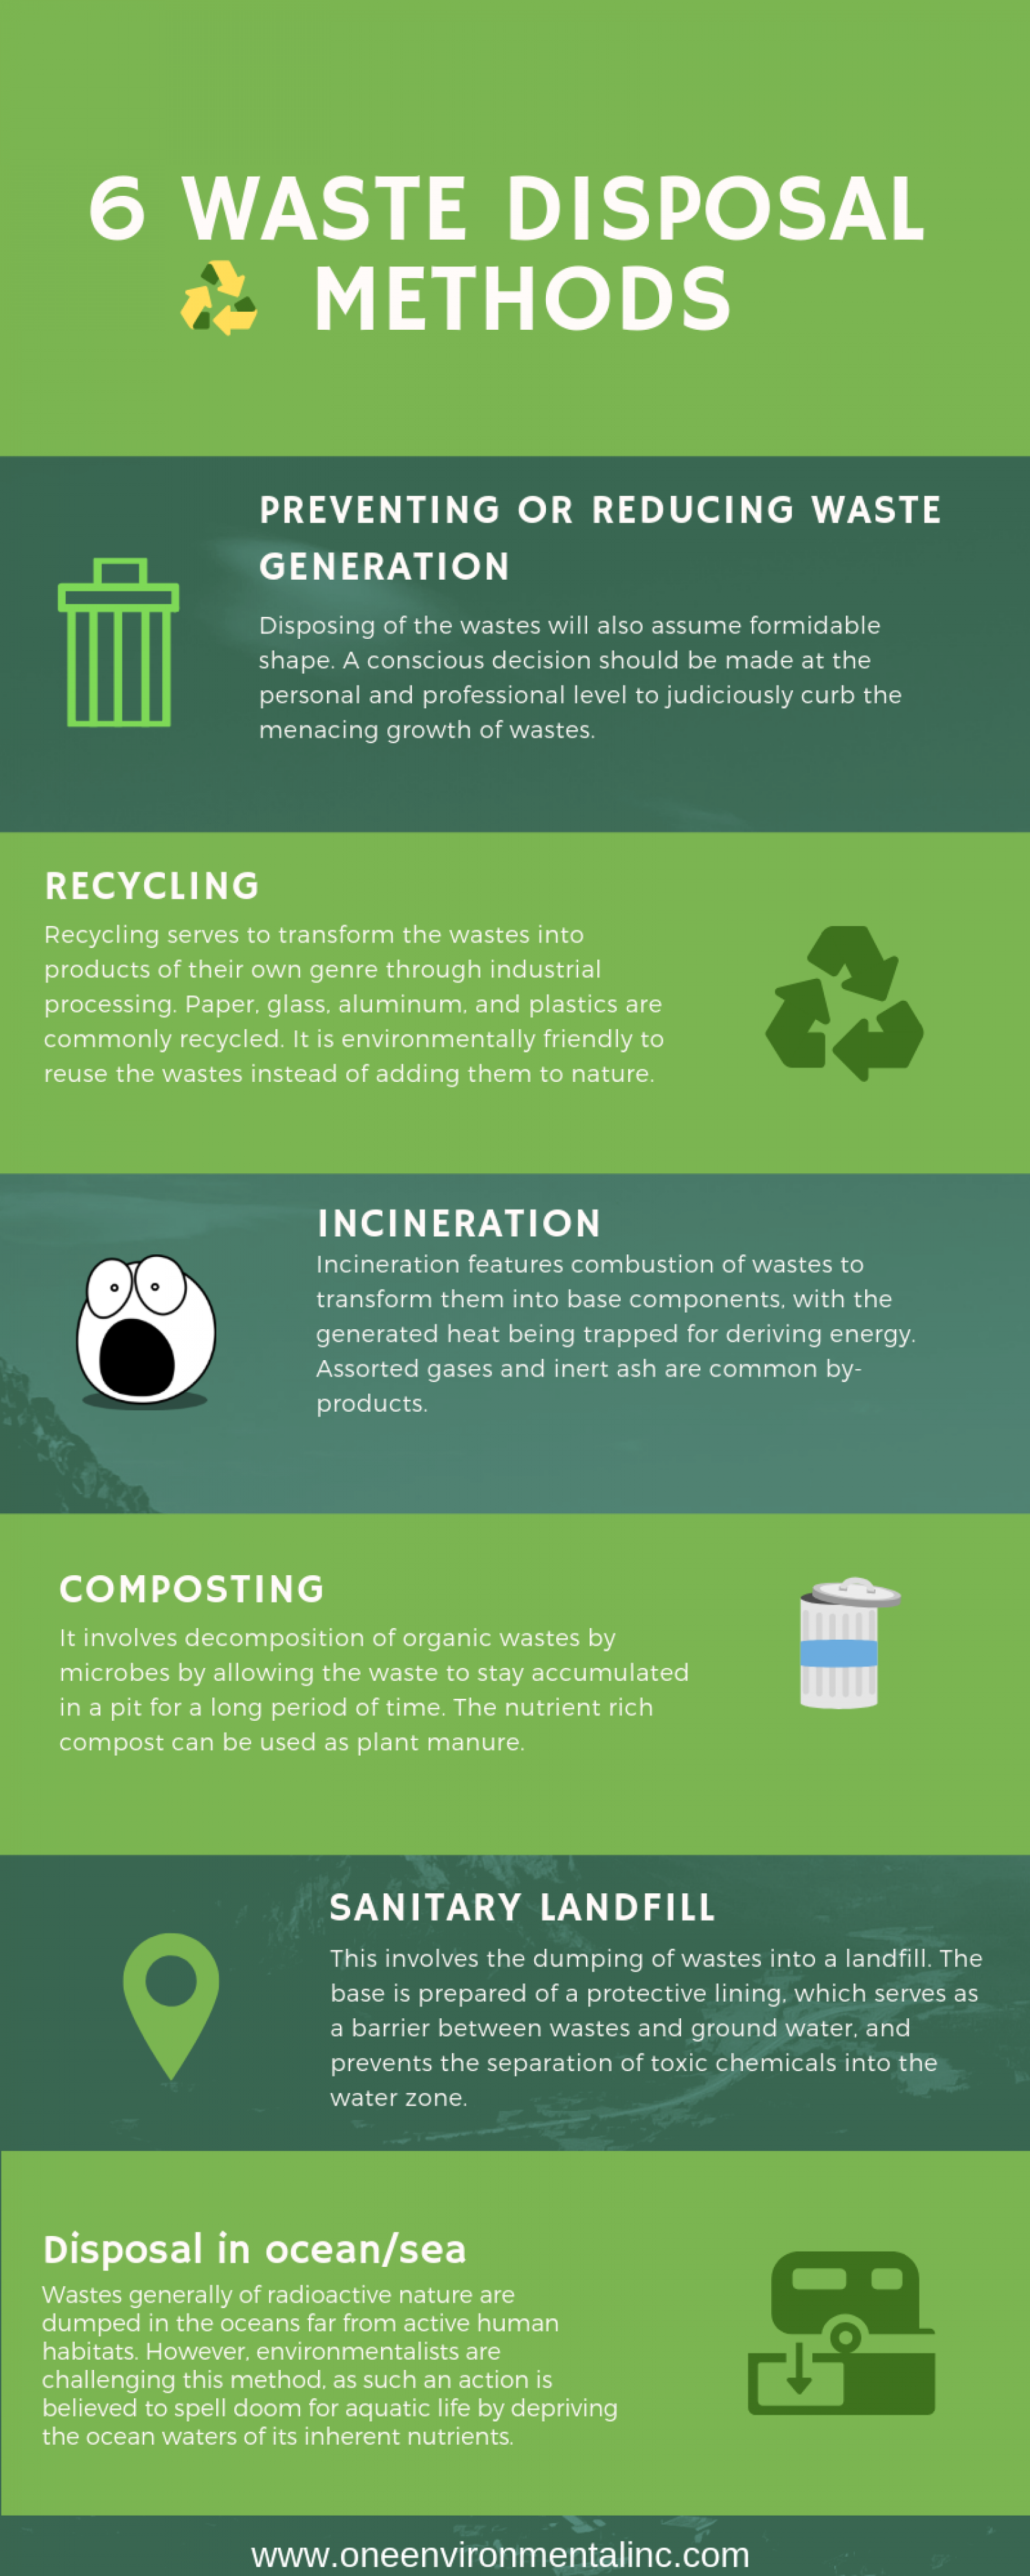 6 Waste Disposal Methods Infographic